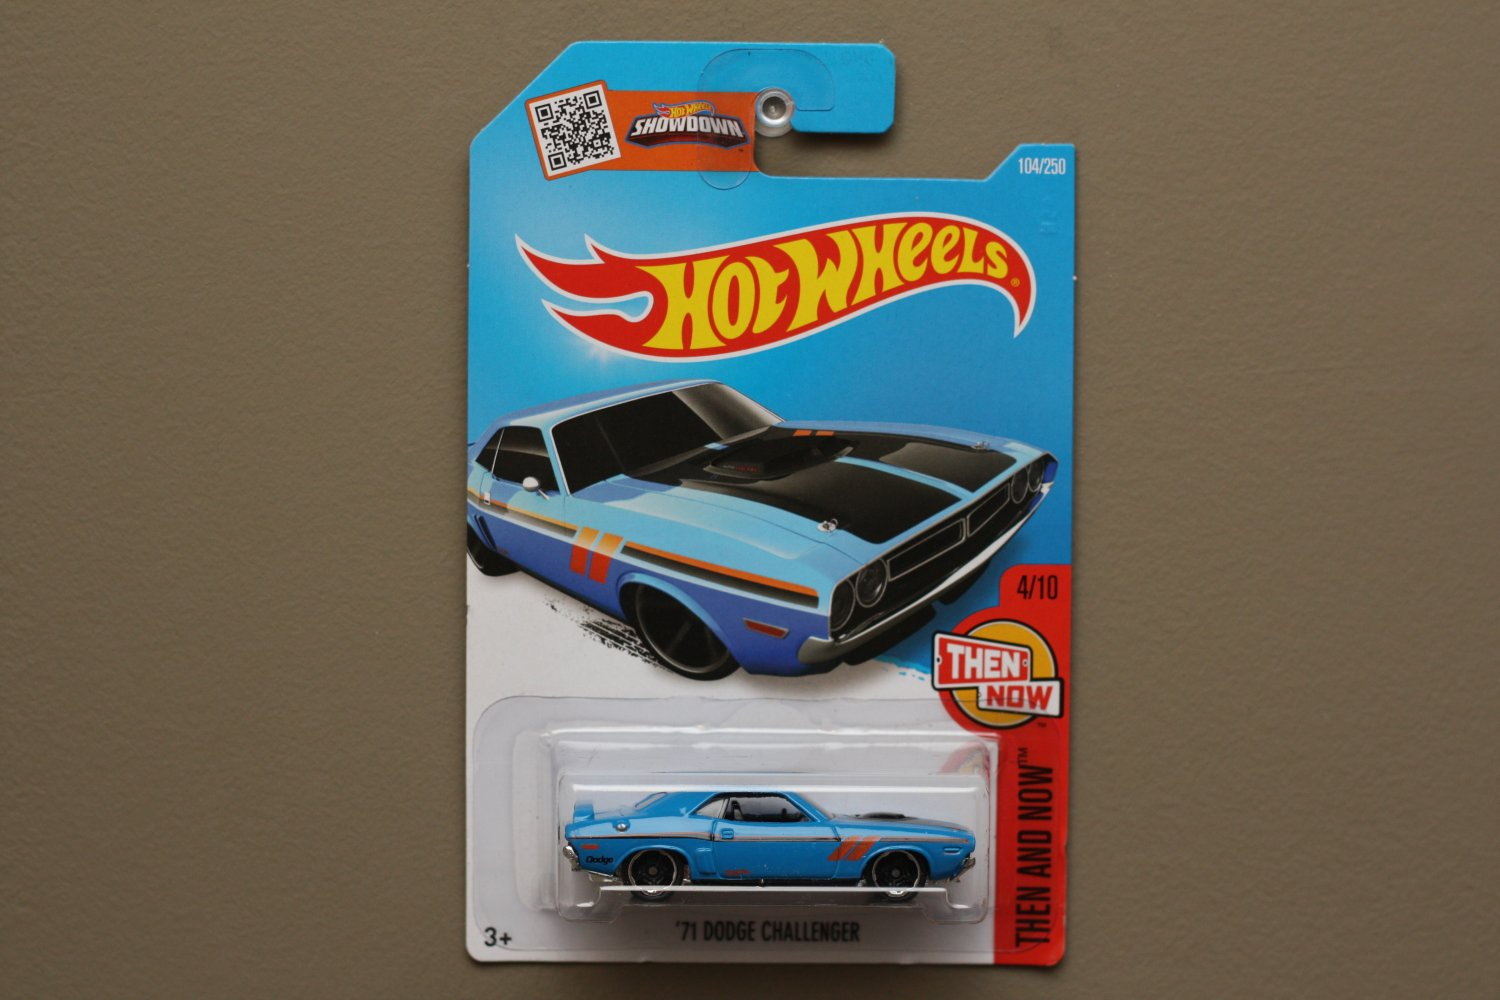 Hot wheels 2016 then and now 39 71 dodge challenger blue for 9 salon hot wheels 2016